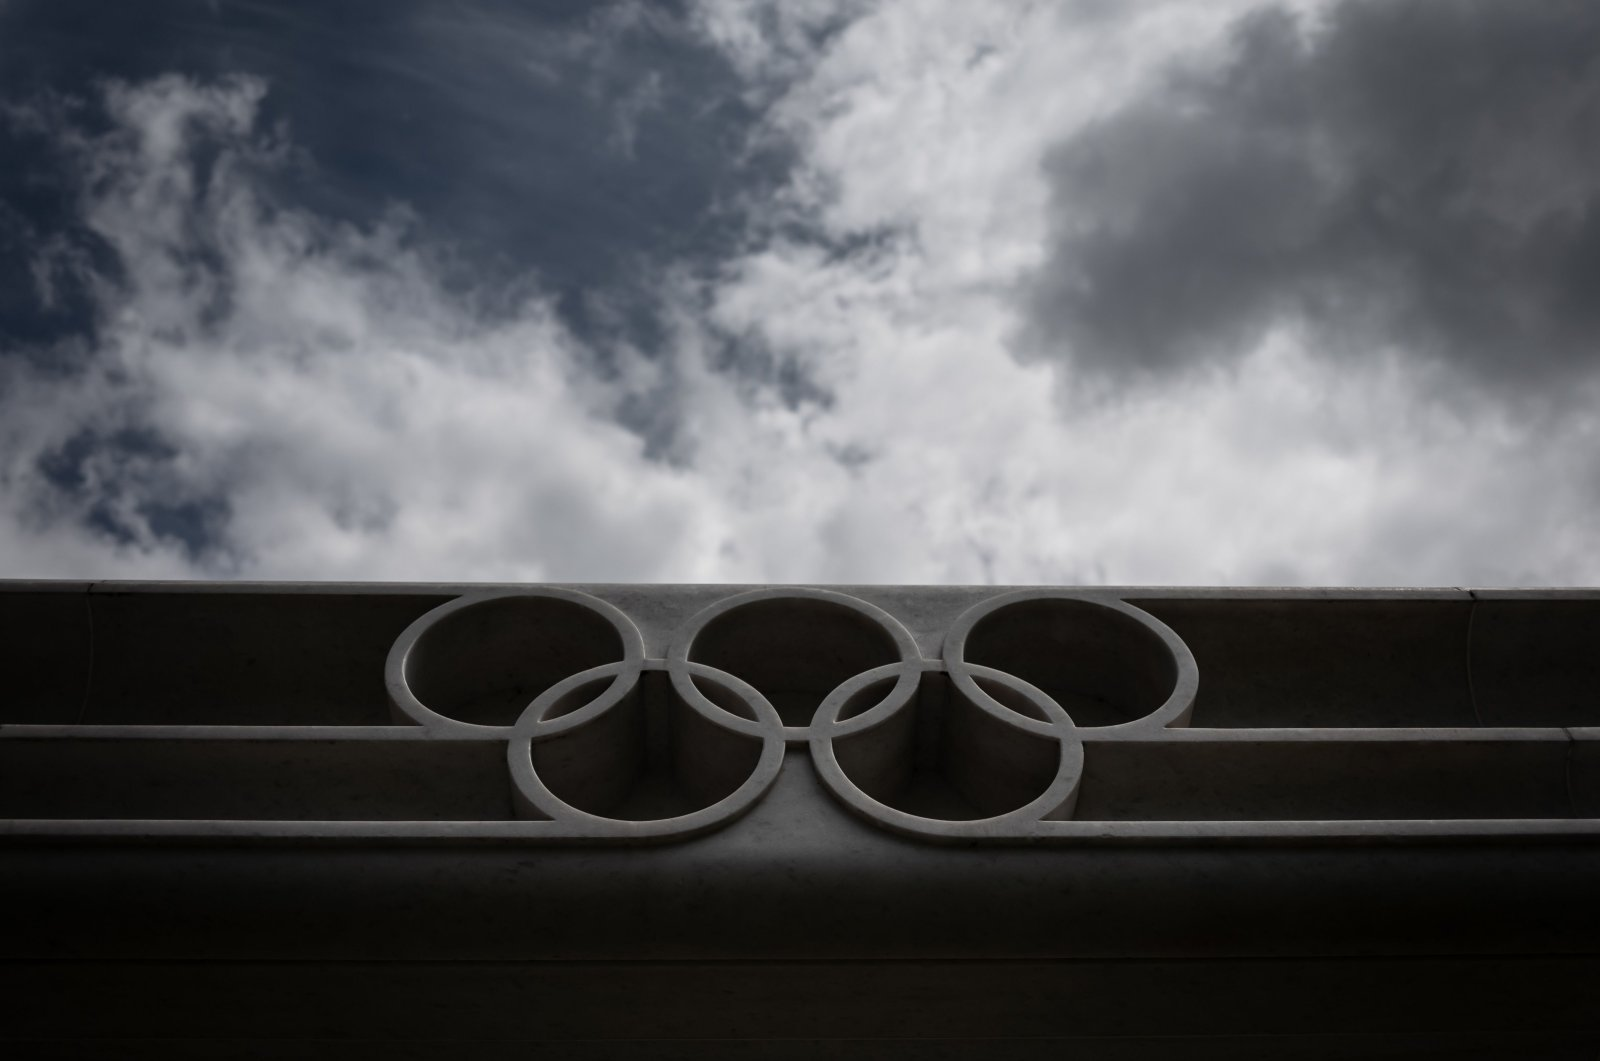 The Olympic rings logo at the entrance of the headquarters of the International Olympic Committee (IOC) in Lausanne, Switzerland, June 8, 2020. (AFP Photo)